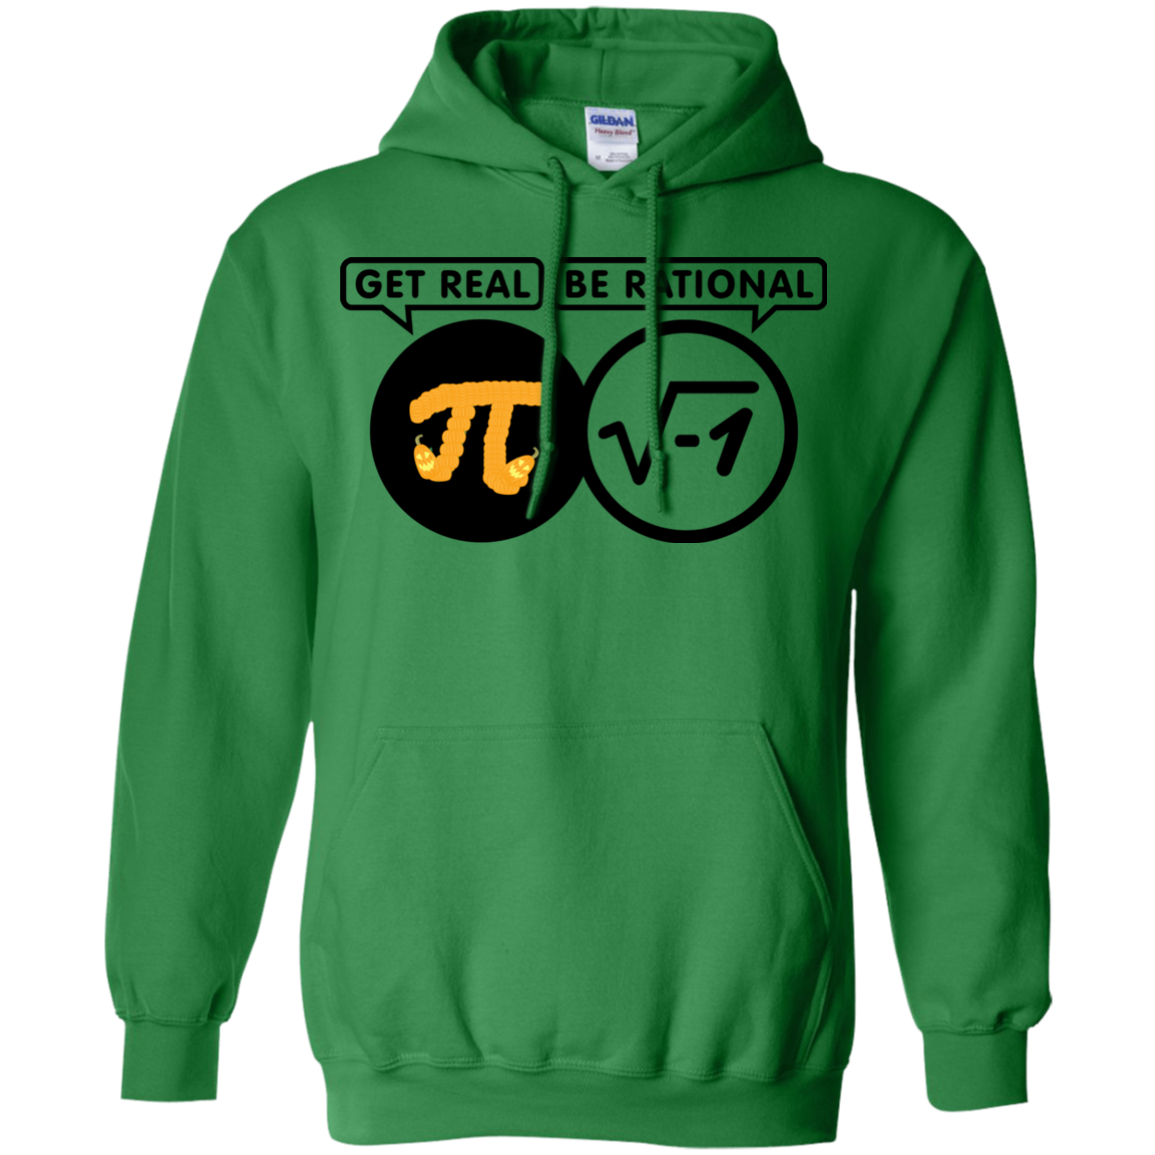 fbe452a7a Pi Day 2018 Shirt Be Rational Get Real T-Shirt Funny Adult Mens Cotton Tee